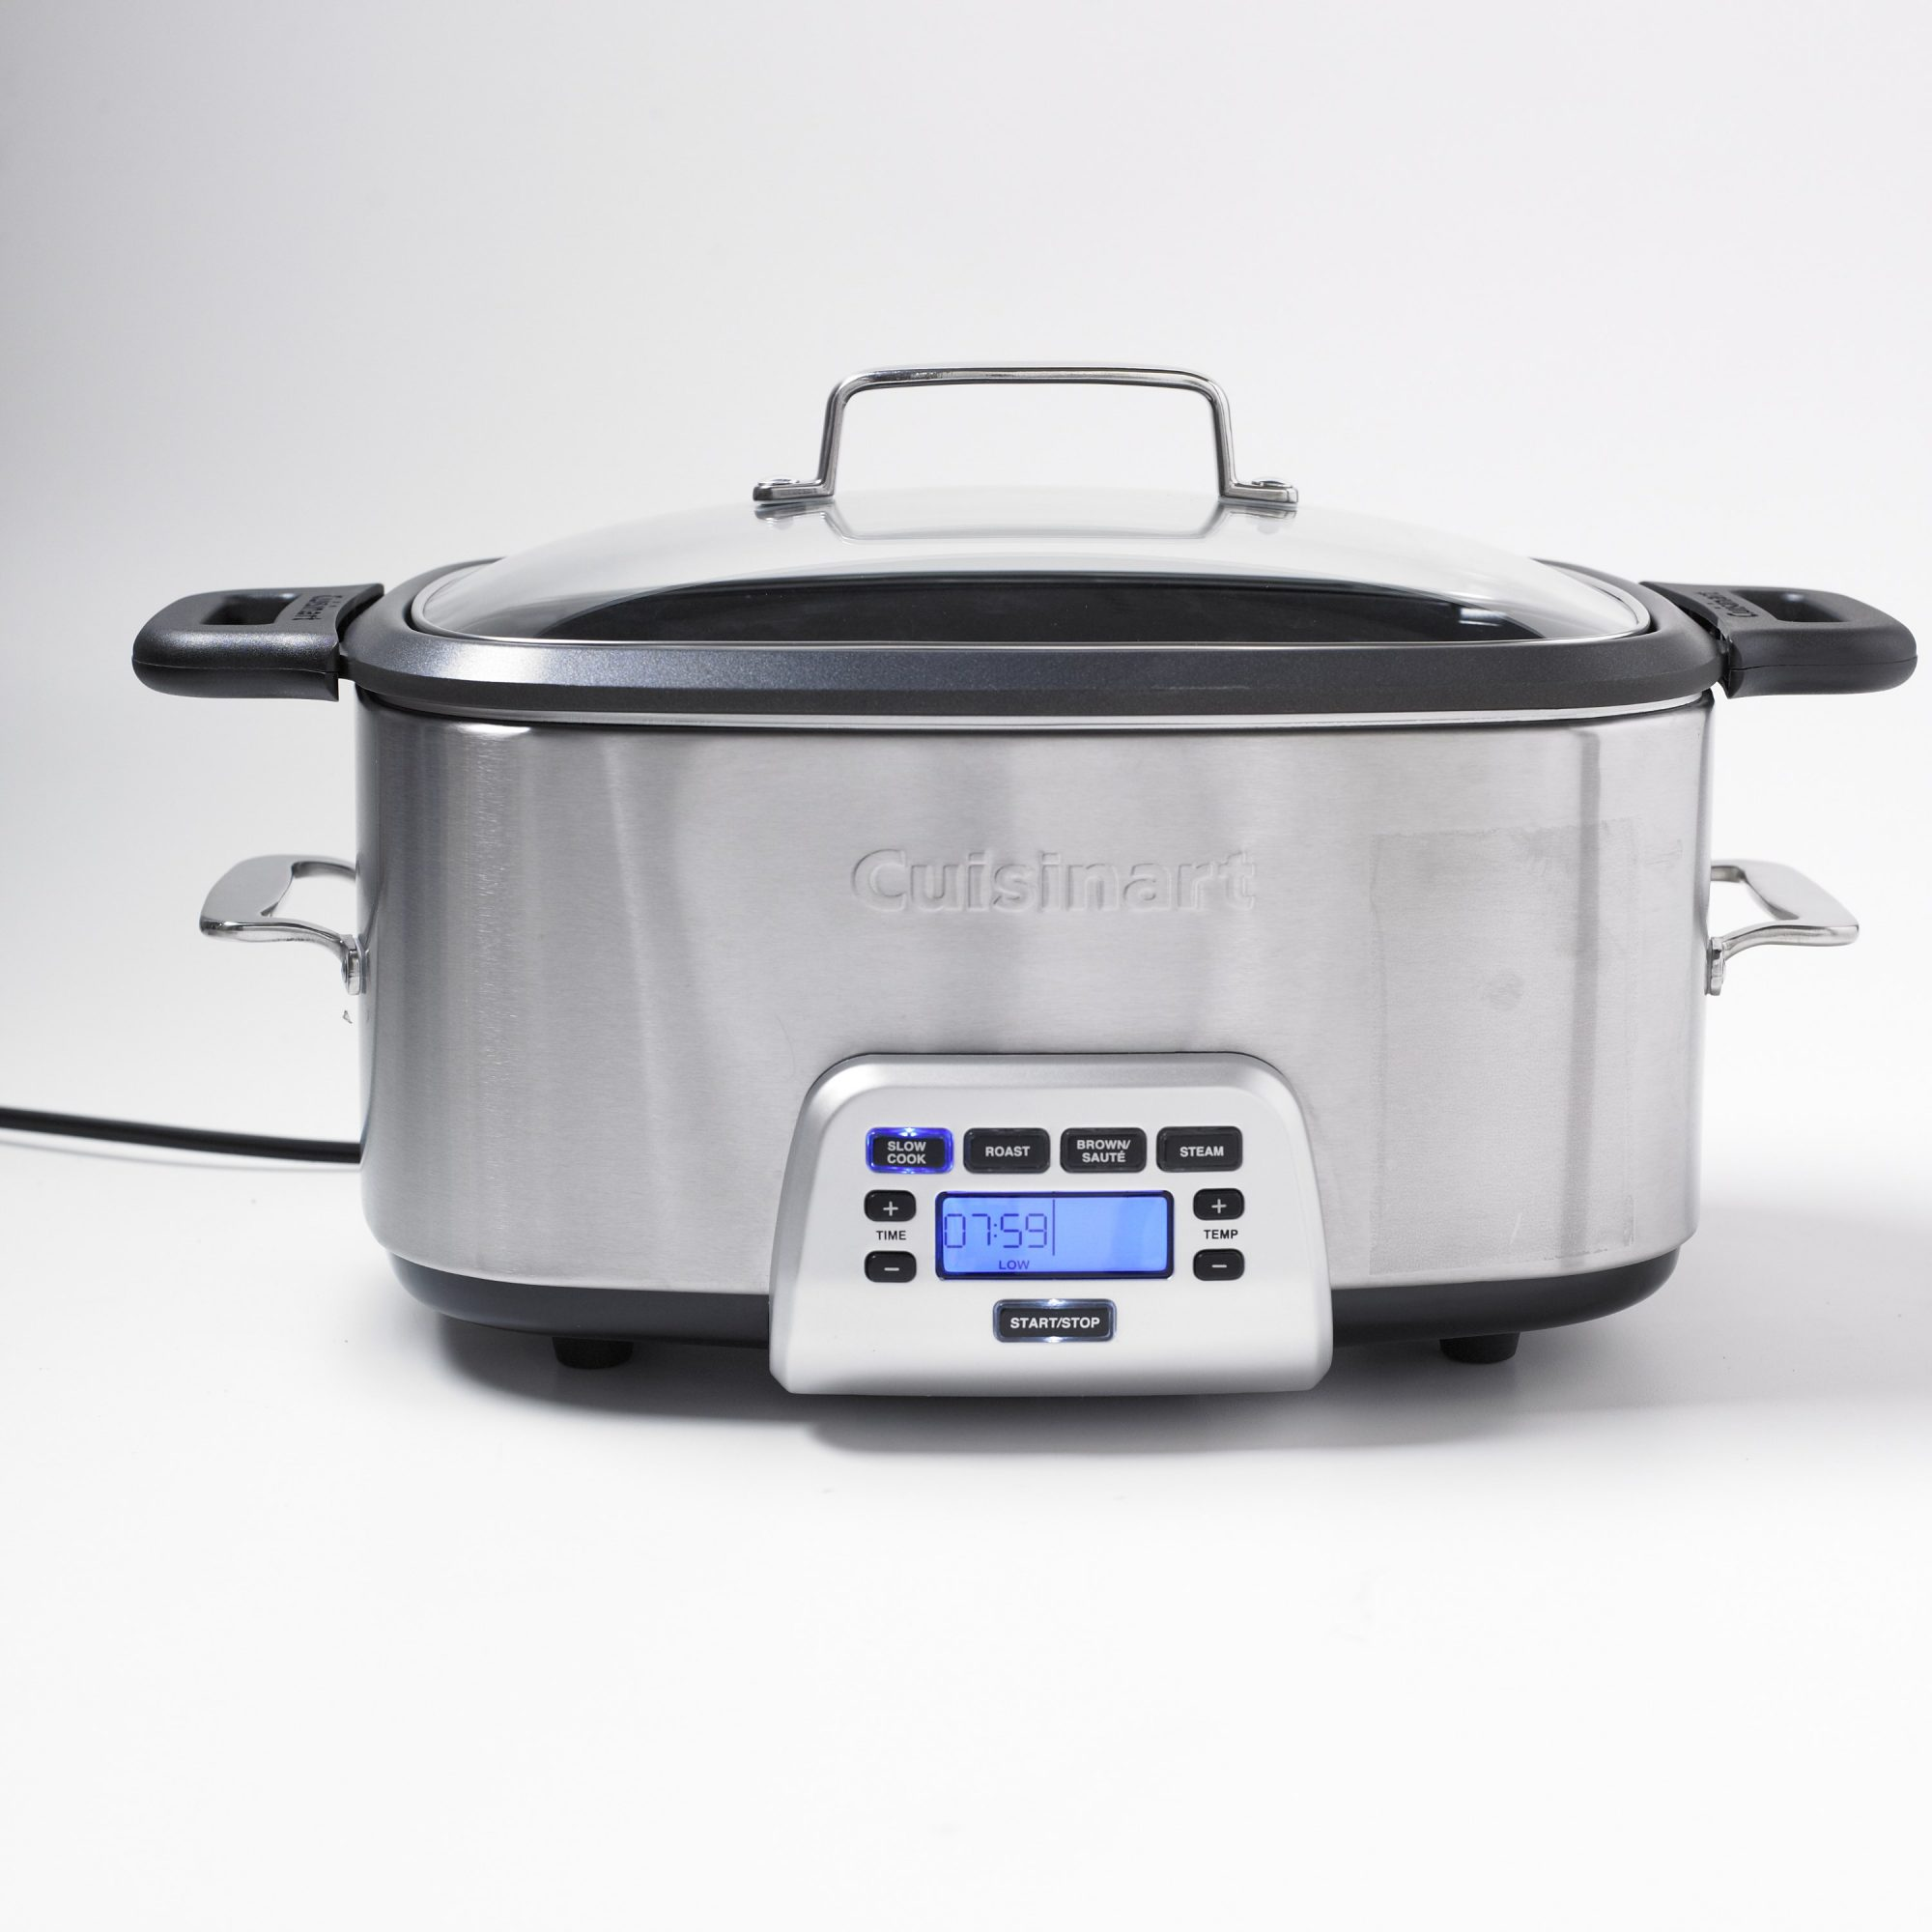 Stainless Steel Rectangular Slow Cooker with Digital Touchpad